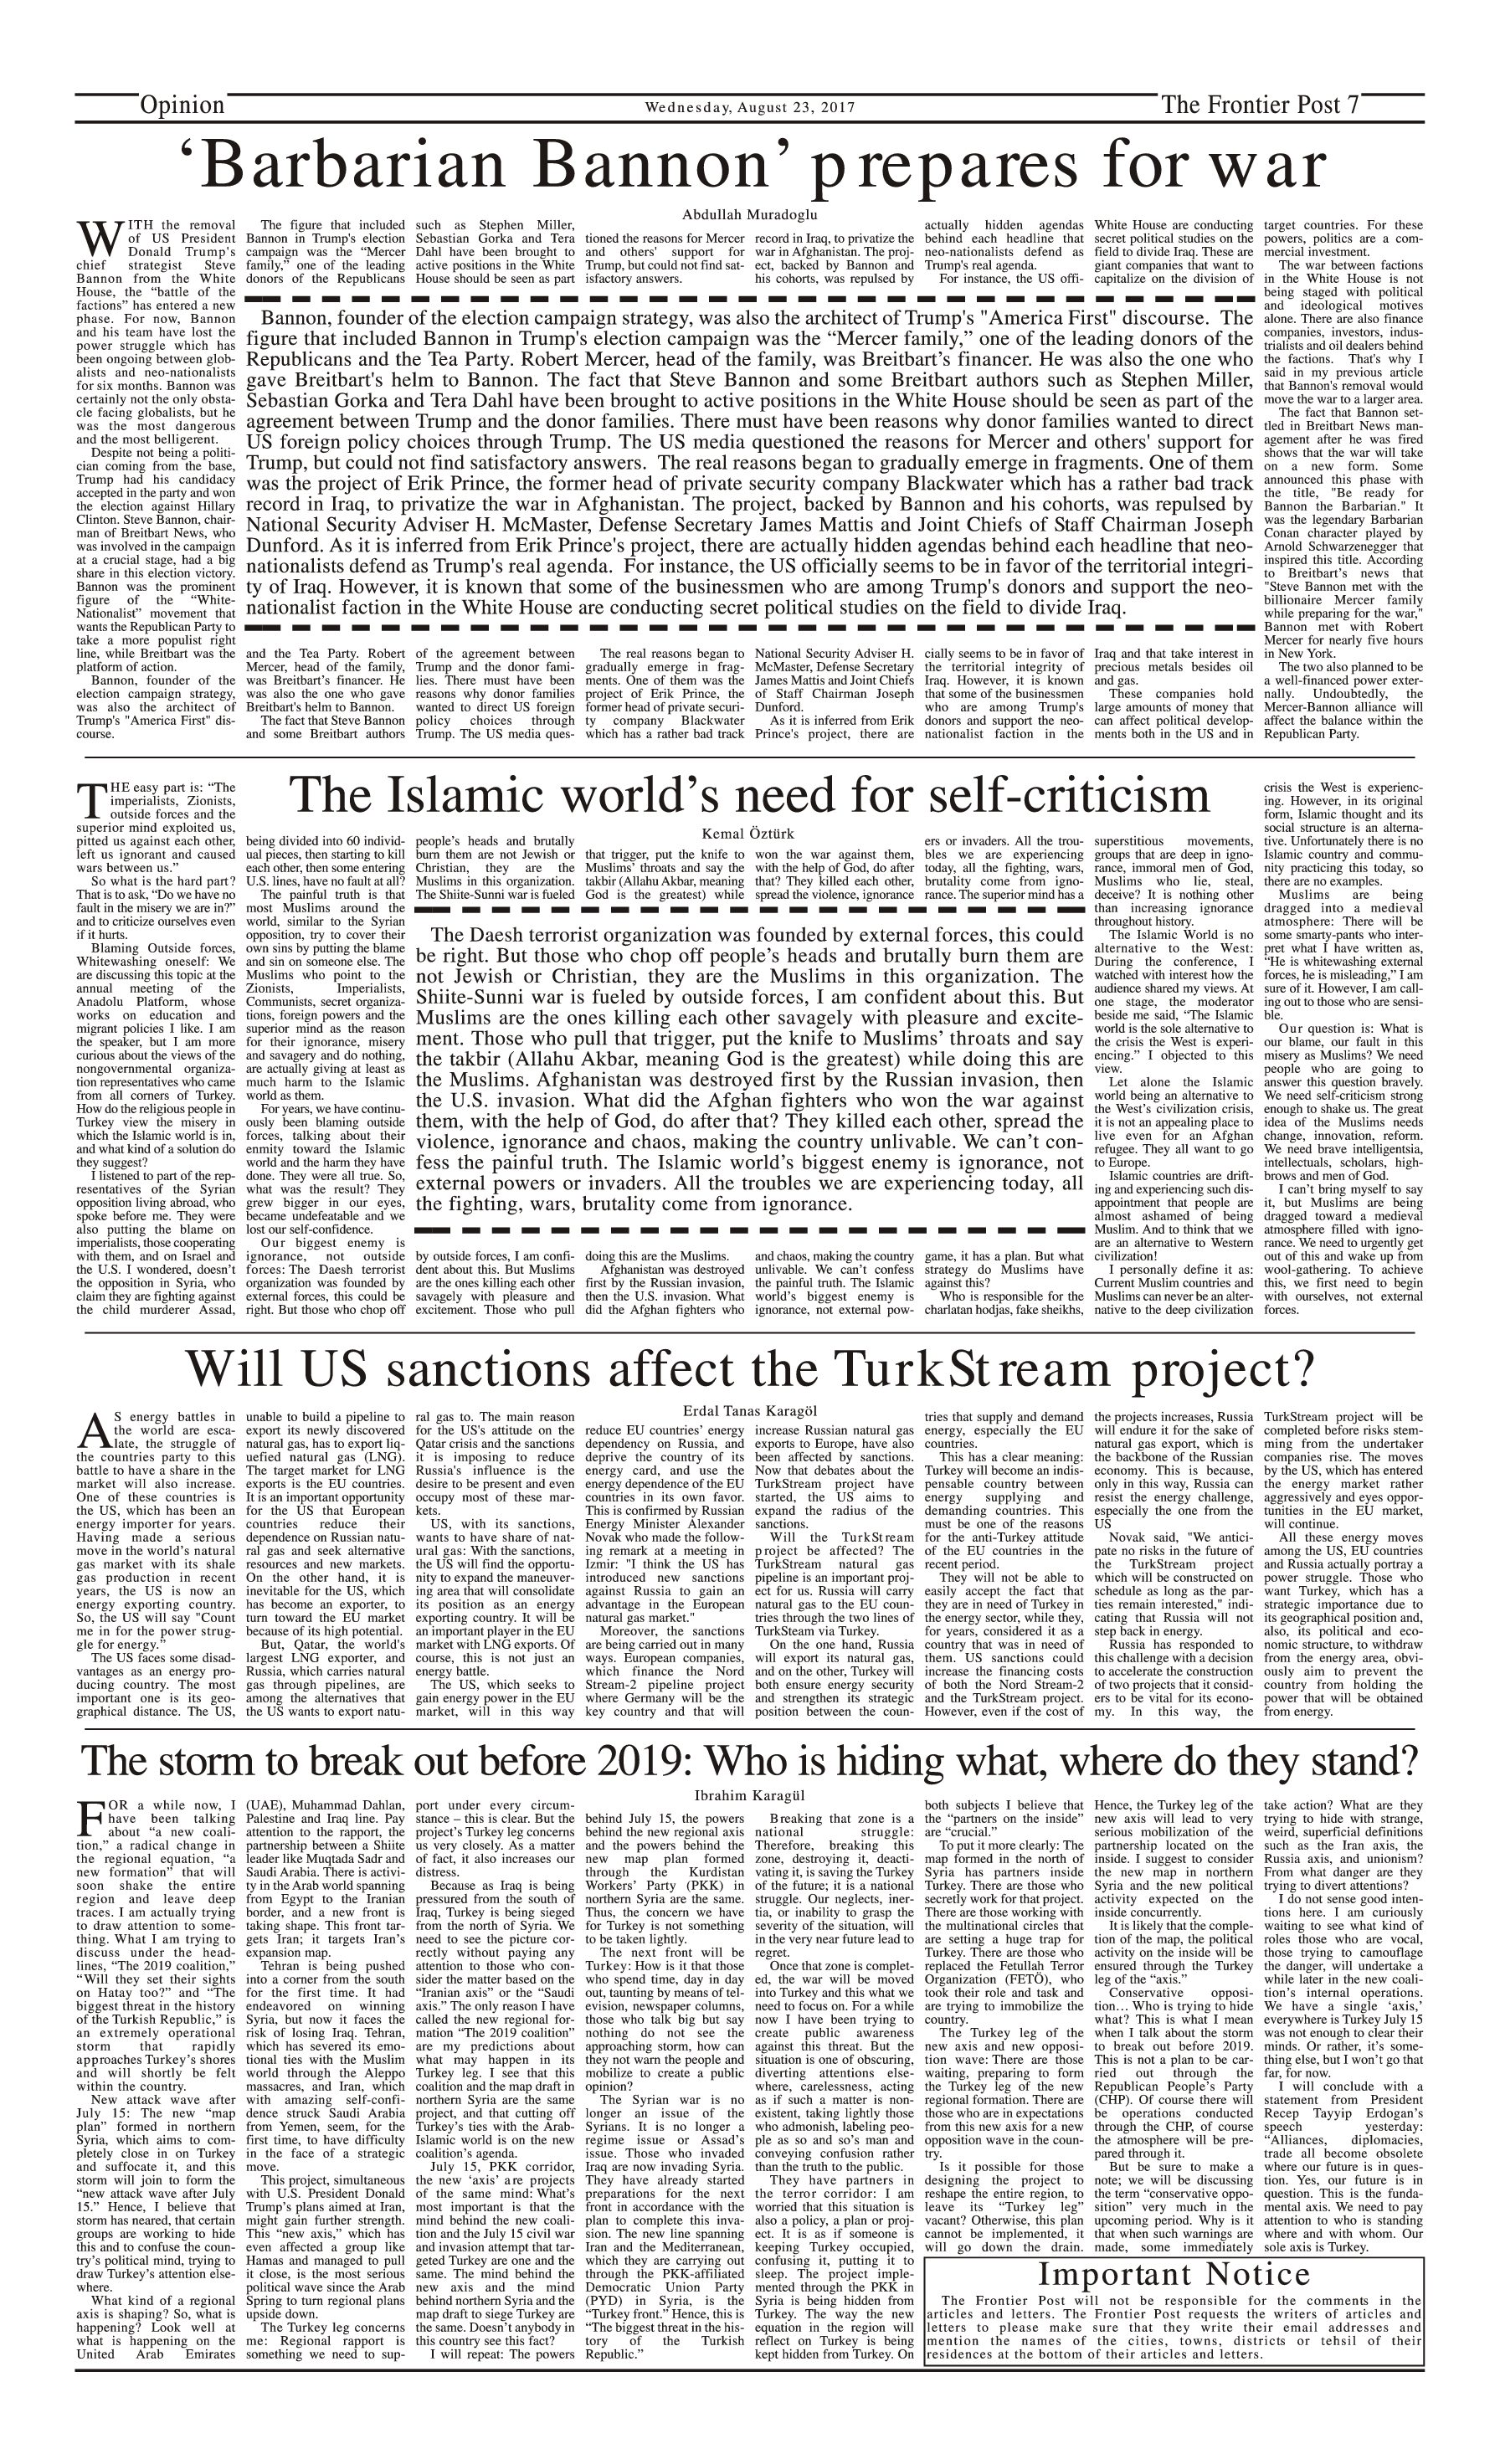 Opinion Page 23